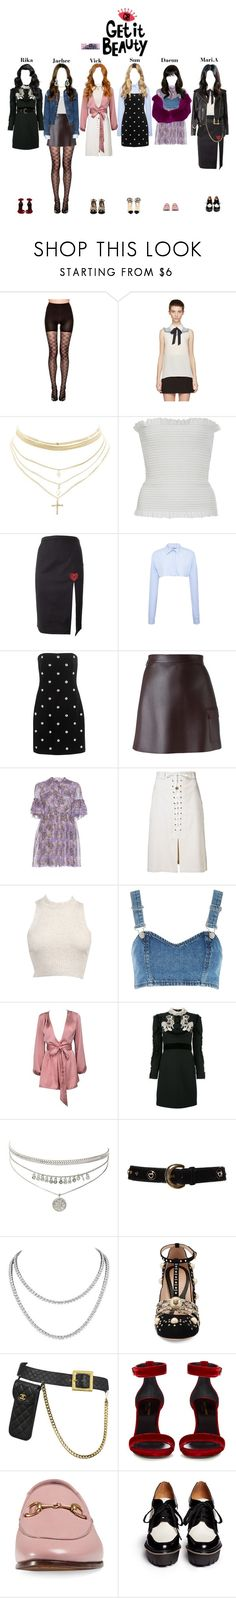 """""""StarZ at Get It Beauty"""" by starz-official on Polyvore featuring moda, SPANX, Charlotte Russe, Veronique Branquinho, Christopher Kane, Nina Ricci, Versus, MSGM, Sea, New York e Topshop"""